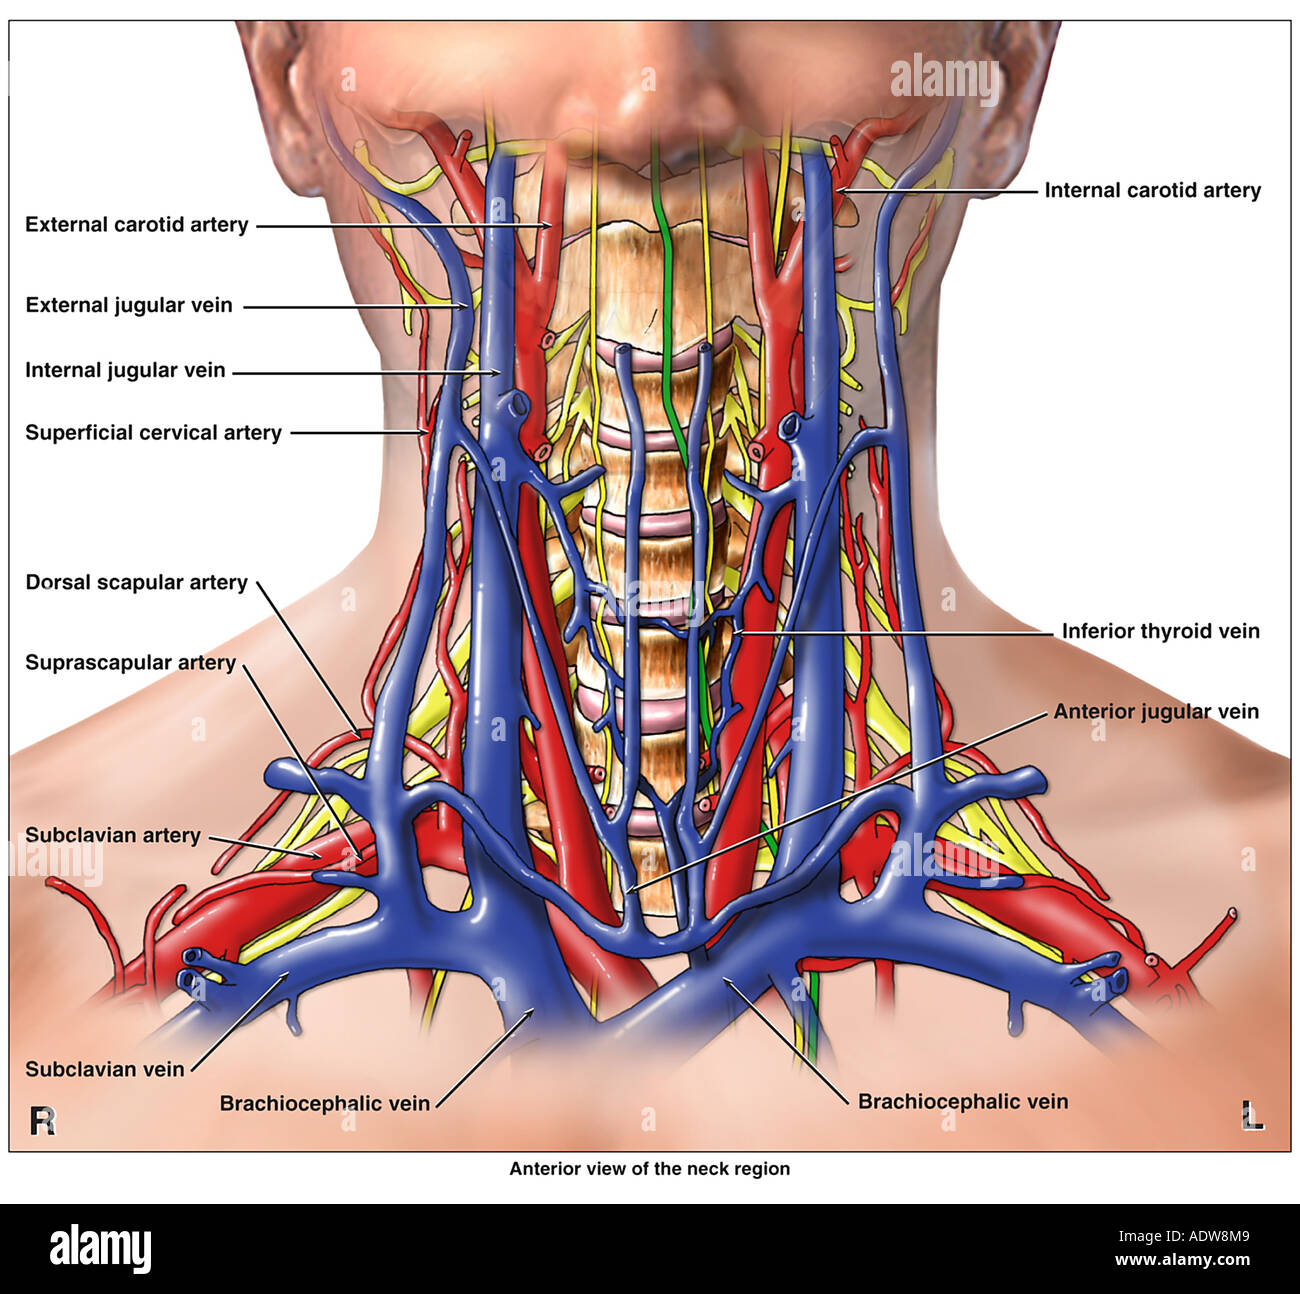 Anatomy of the Arteries Veins and Nerves of the Cervical Neck Spine ...